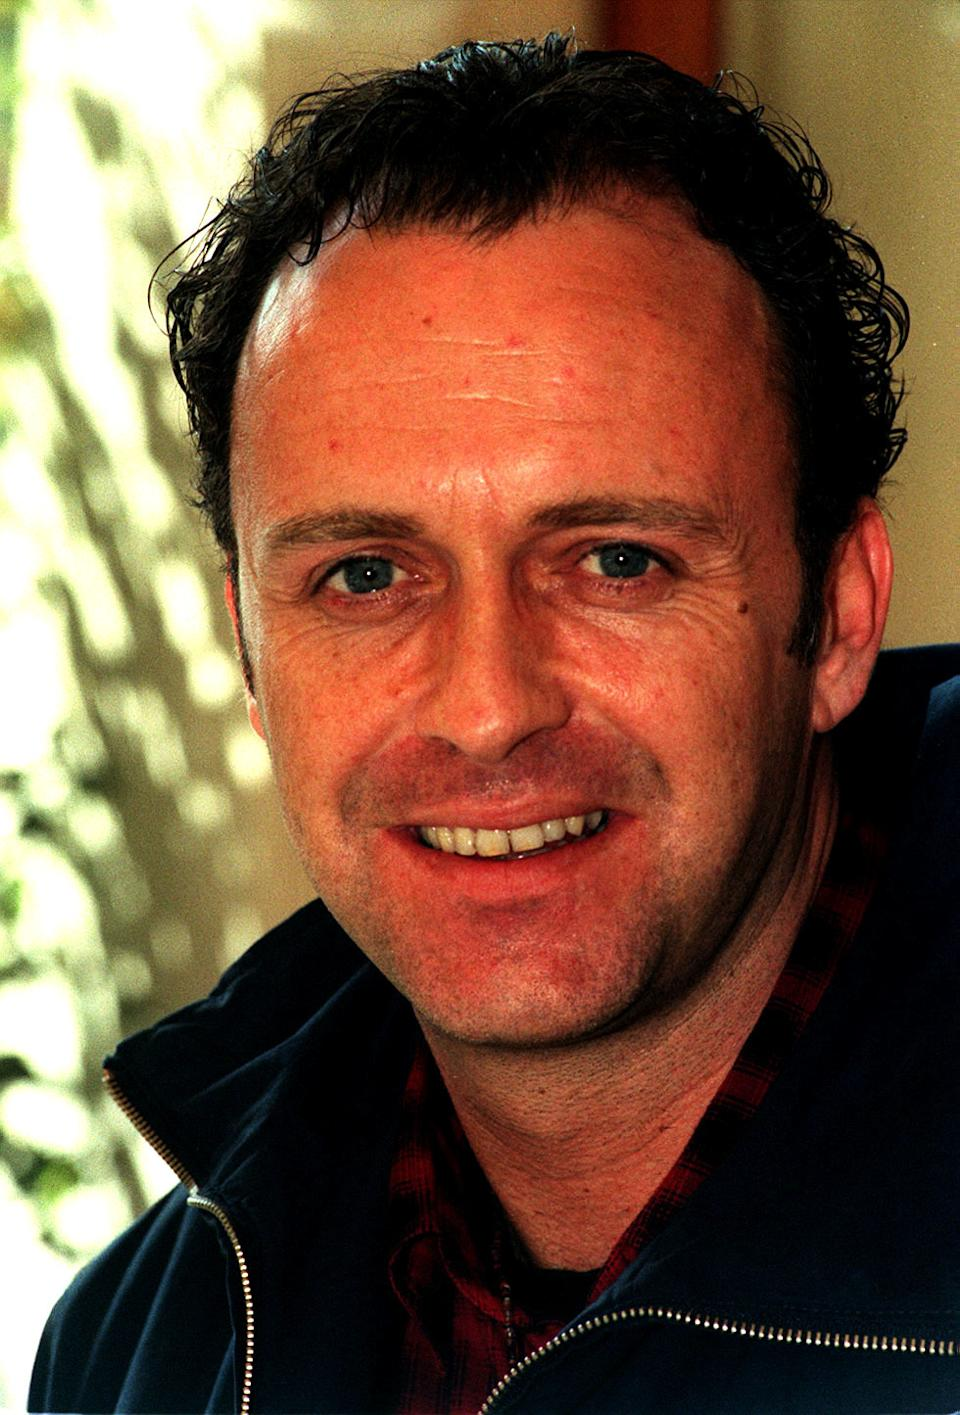 "PA NEWS PHOTO 7/4/98 ACTOR PAUL USHER FROM THE CHANNEL 4 TV SOAP ""BROOKSIDE"" AT A PHOTOCALL TO PROMOTE THE FIVE-NIGHT EASTER SPECIAL"